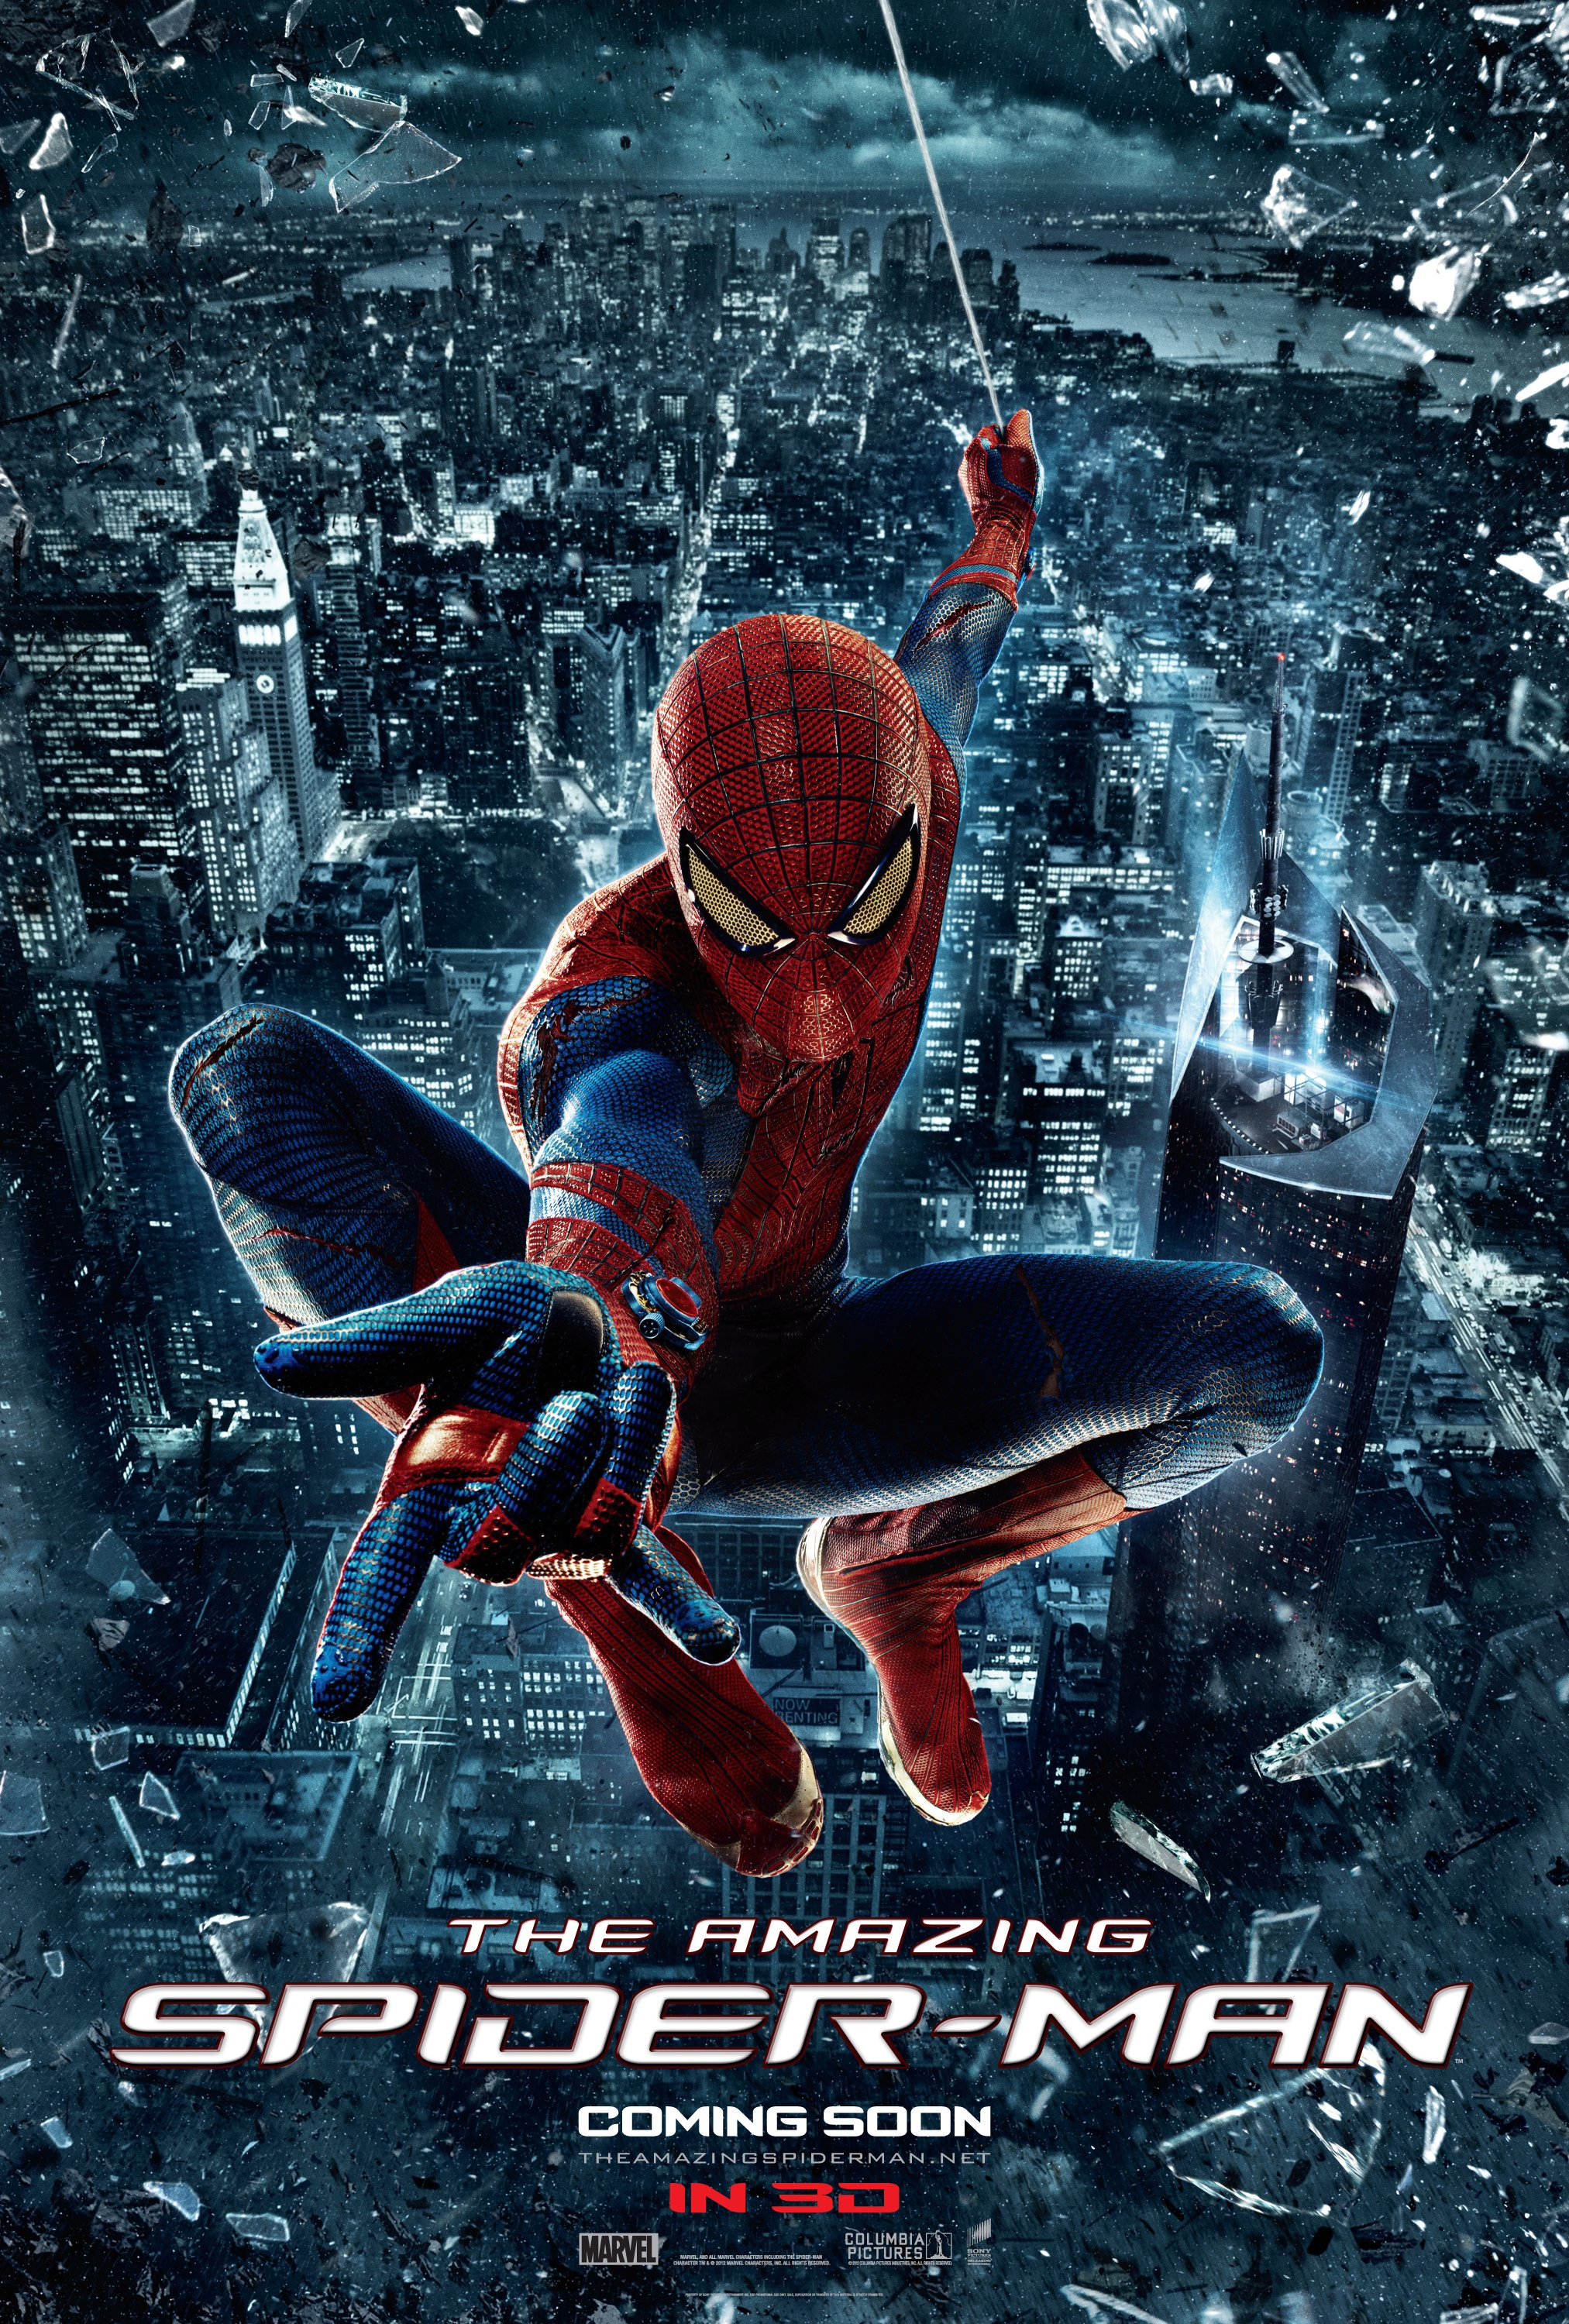 Spider-man (2012) - marvel movies wiki - wolverine, iron man 2, thor